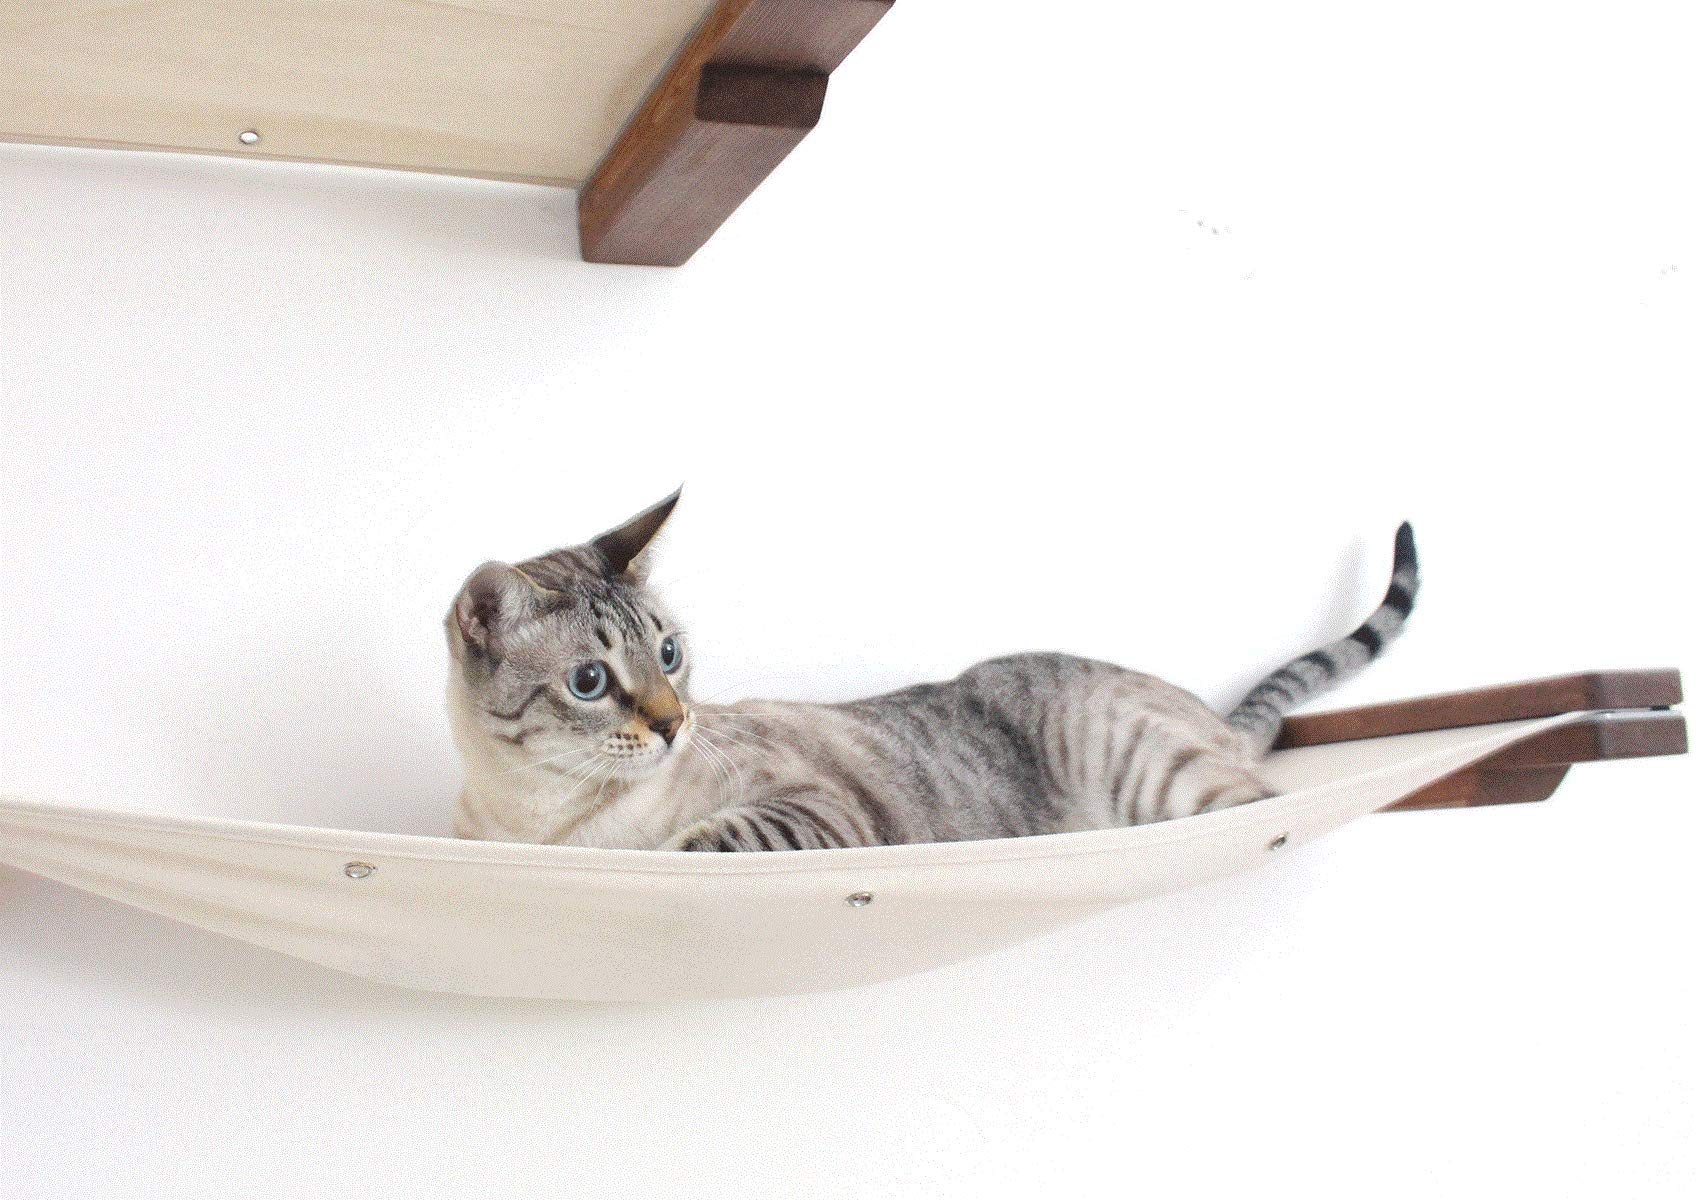 CatastrophiCreations Cat Double Decker Wall Mounted Lounge and Play Furniture Cat Tree Shelves - Onyx/Natural, One Size 3